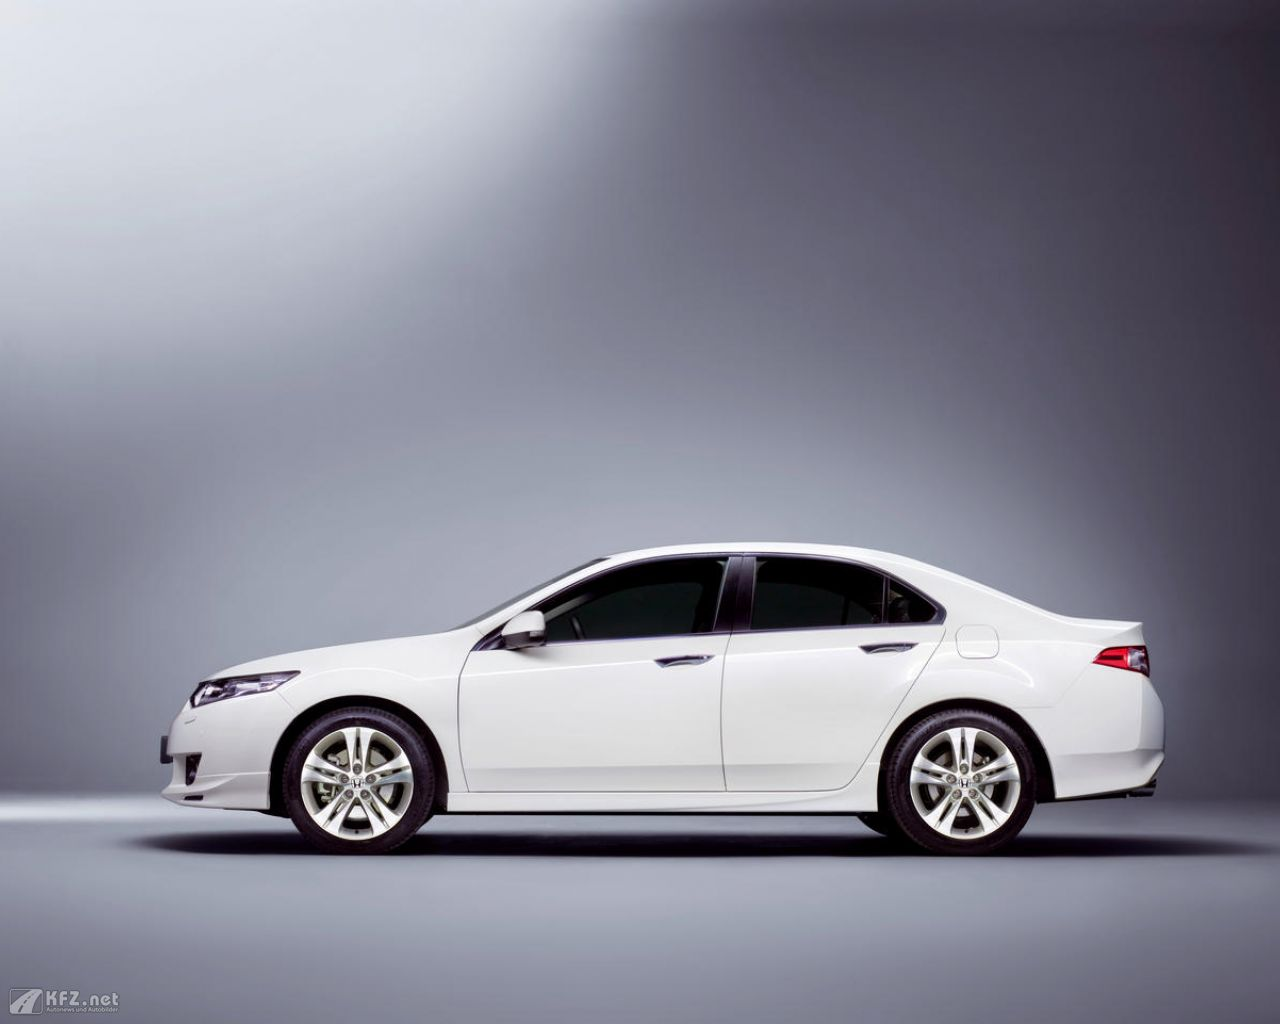 honda-accord-1280x1024-161